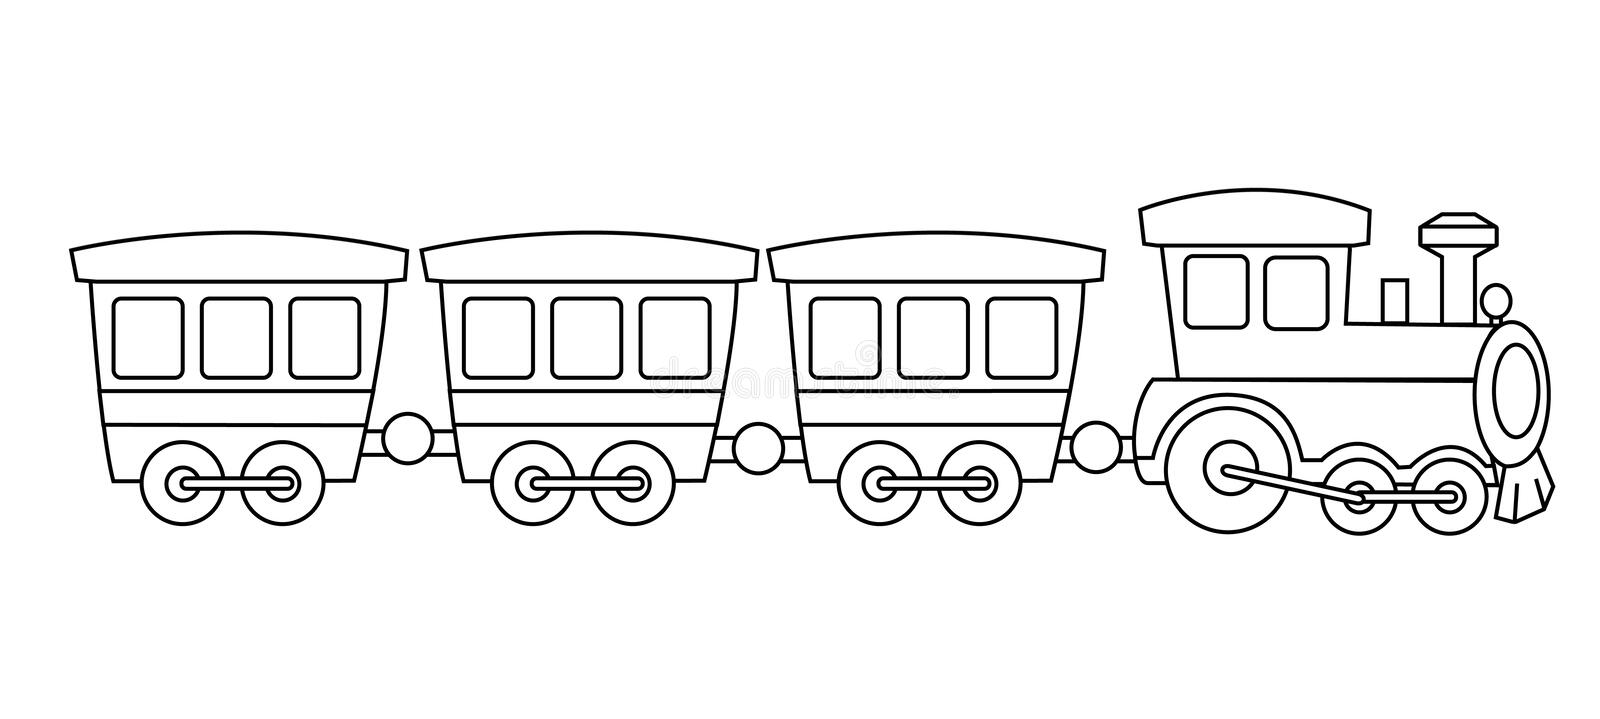 Toy train stock vector. Illustration of coach, clipart